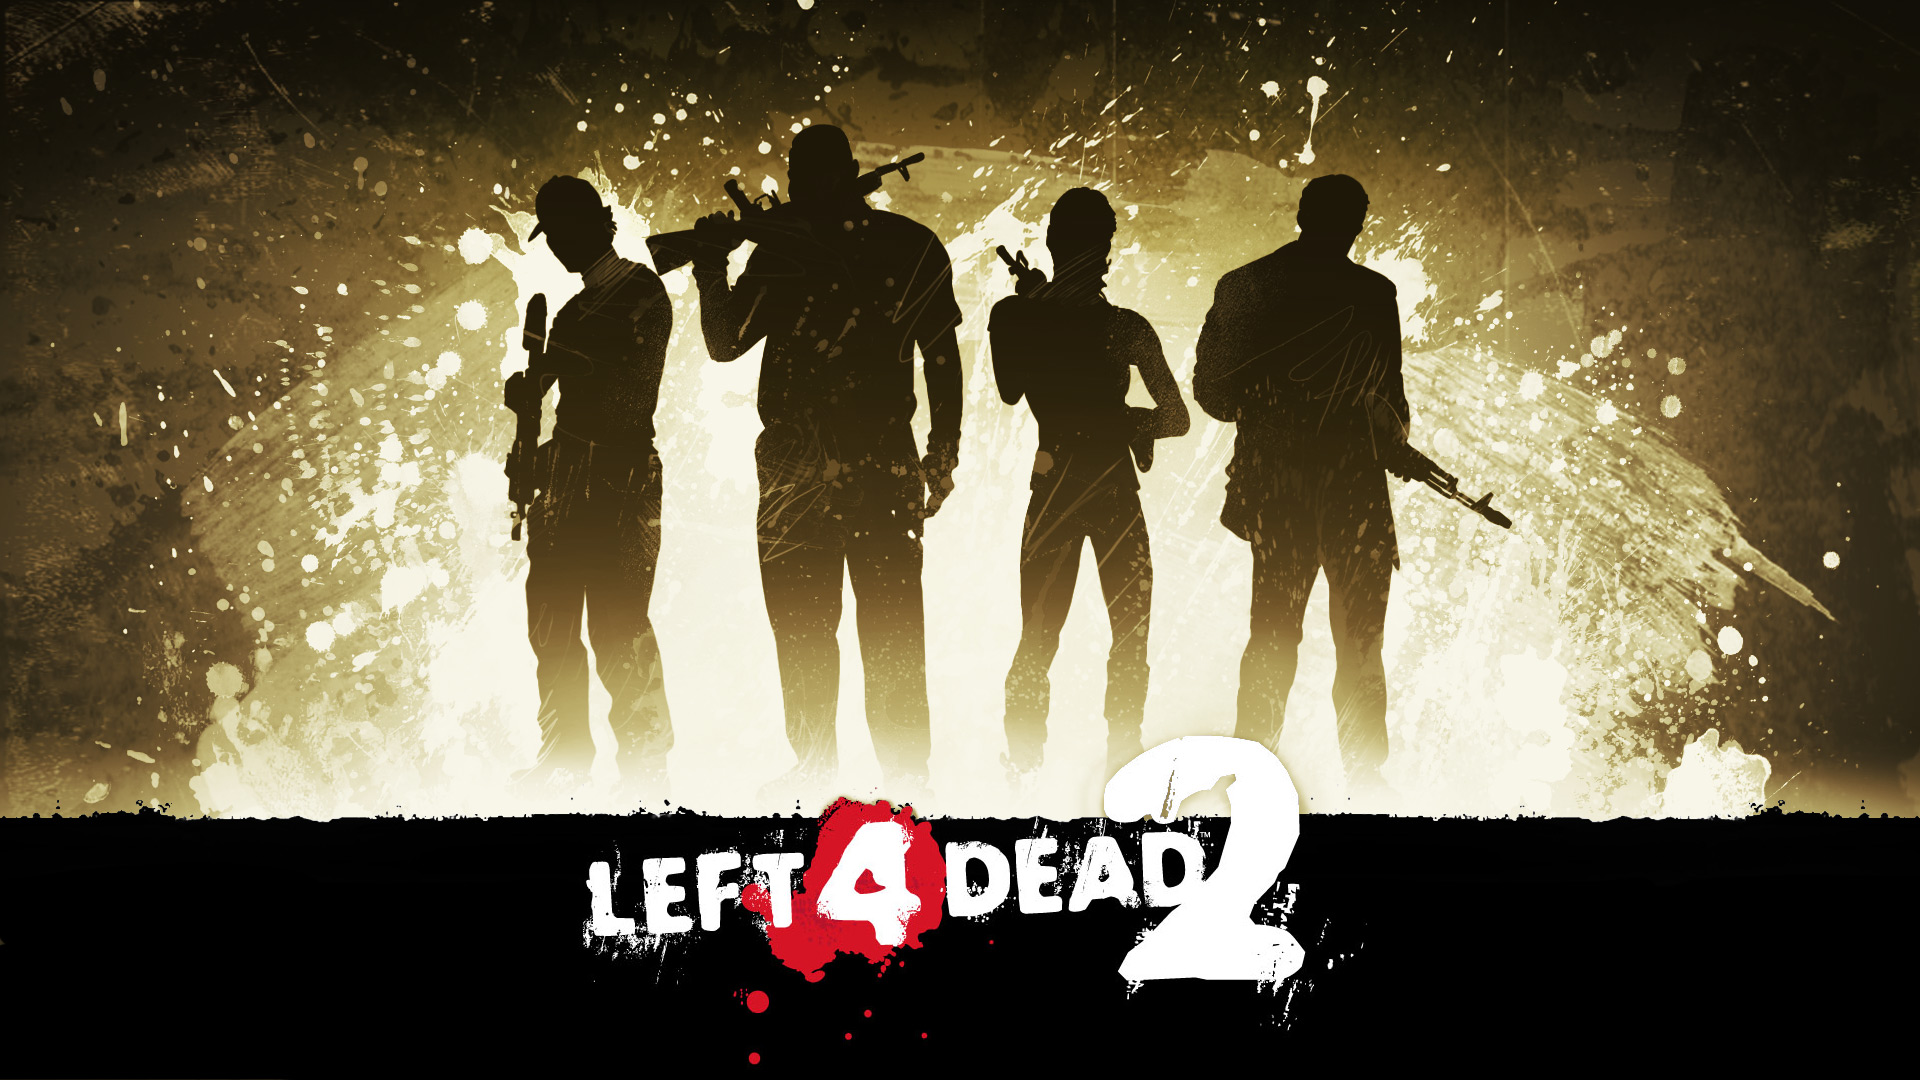 Left 4 Dead 2 Steam Summer Sale